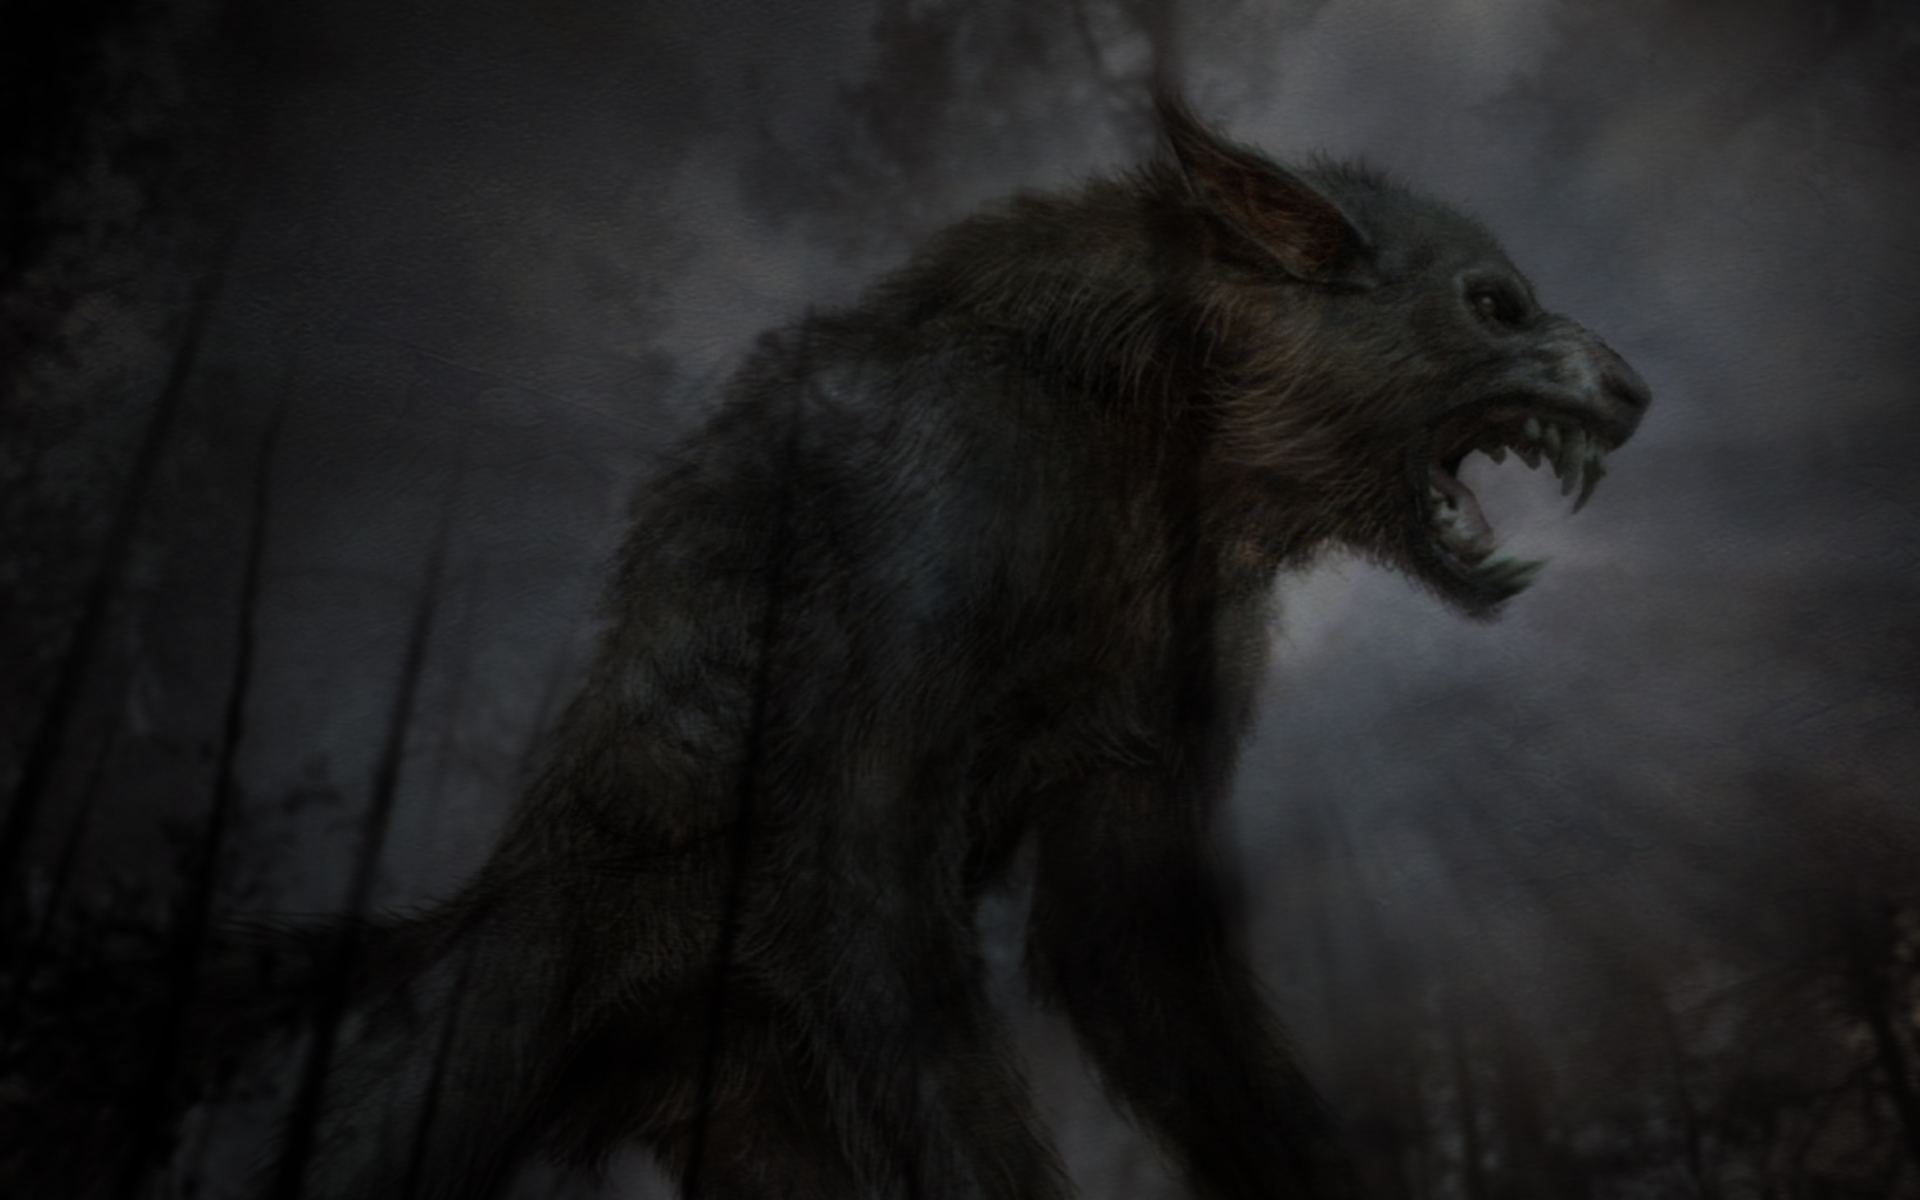 Beast Black Wolf Exclusive HD Wallpapers 2690 1920x1200